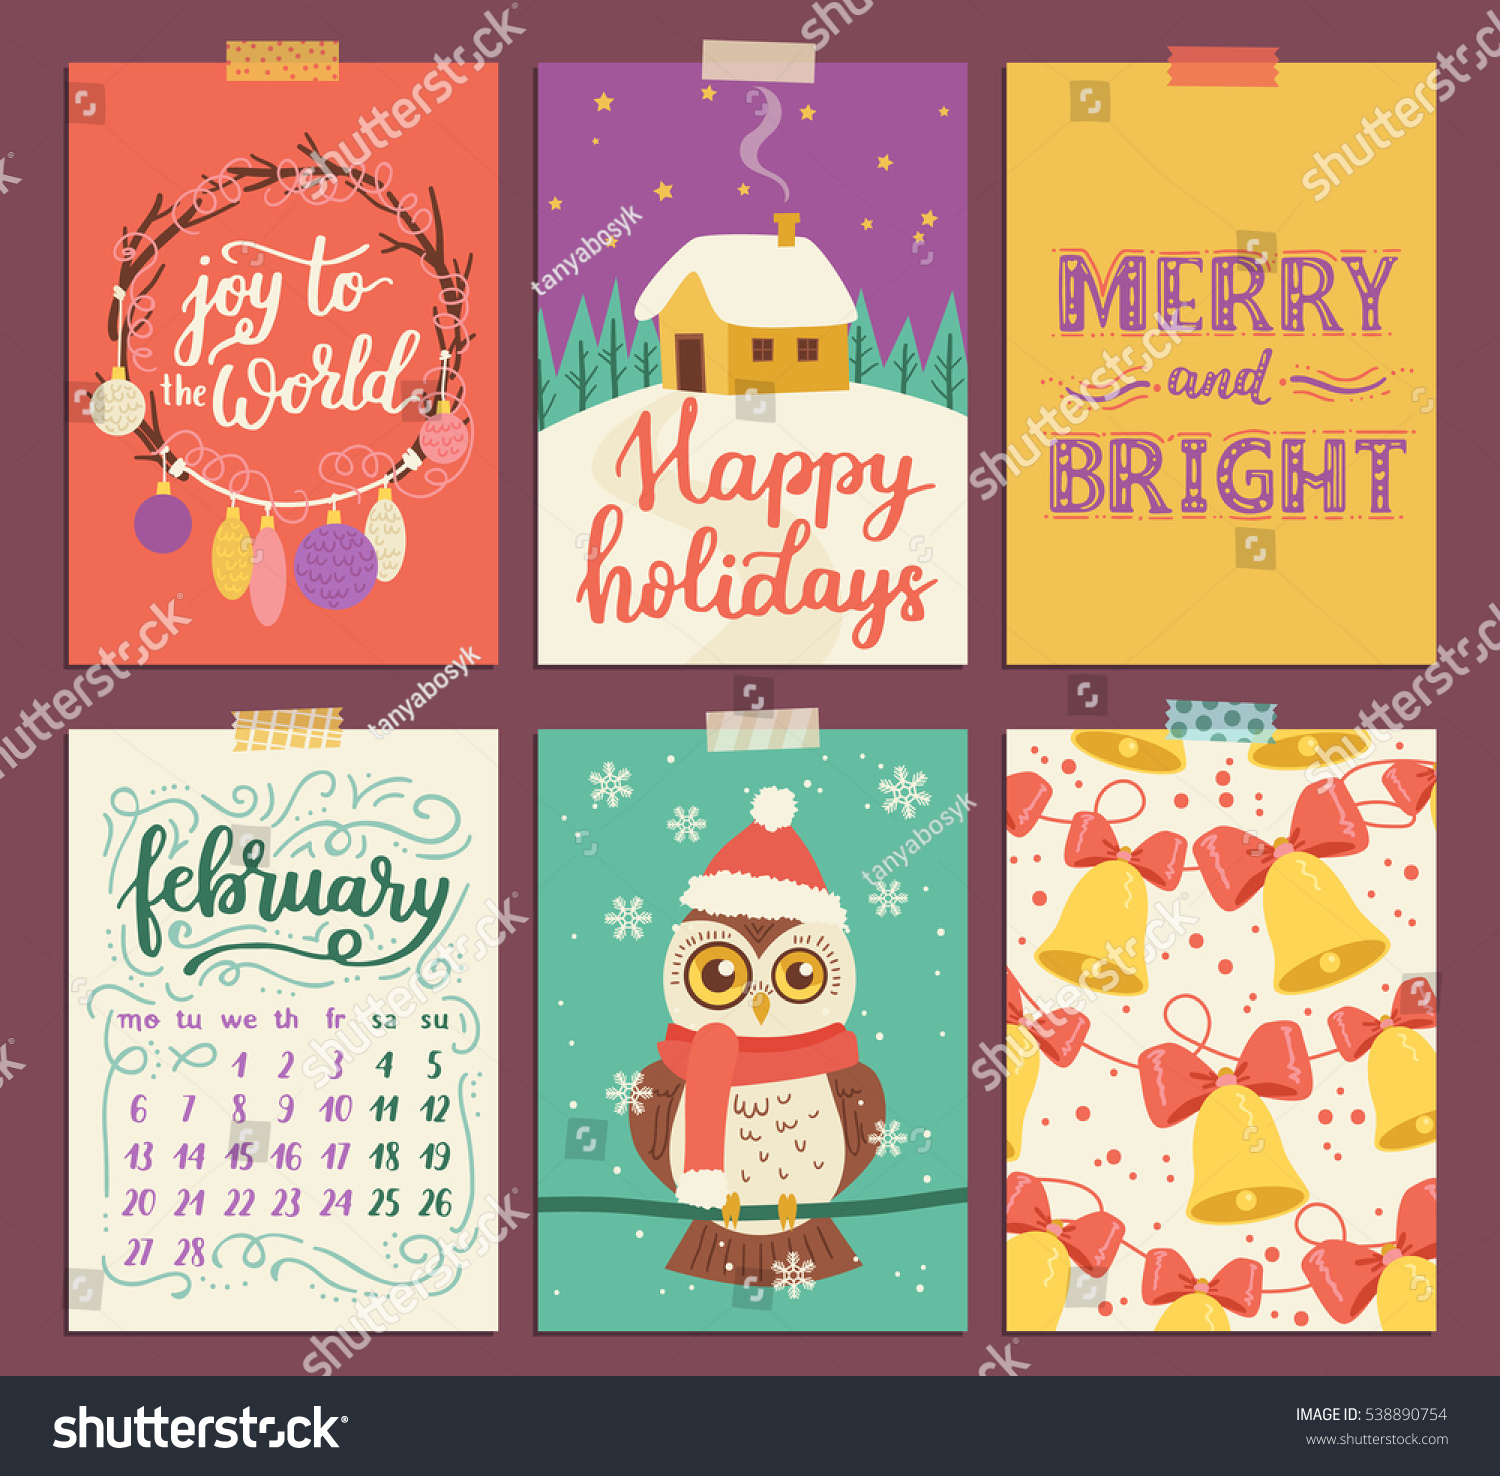 collection of christmas poster templates christmas set of collection of christmas poster templates christmas set of greeting cards bright colors cute